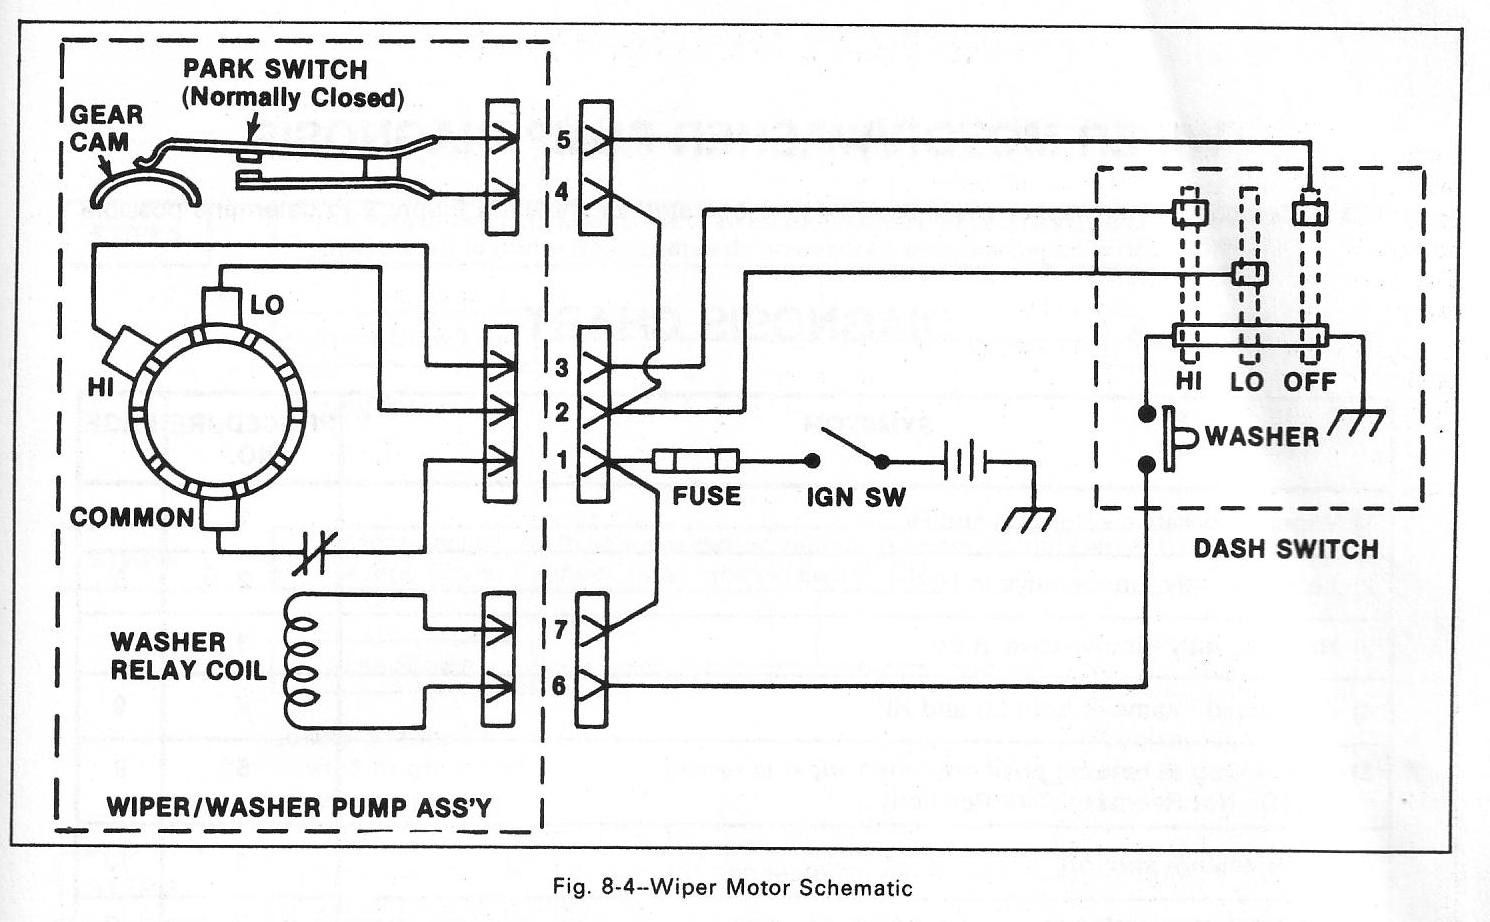 Park Switch And Windshield Wiper Wiring Diagram With Washer Relay Coil In Wiring Diagram Wiper Motor Electrical Diagram Chevy Trucks Windshield